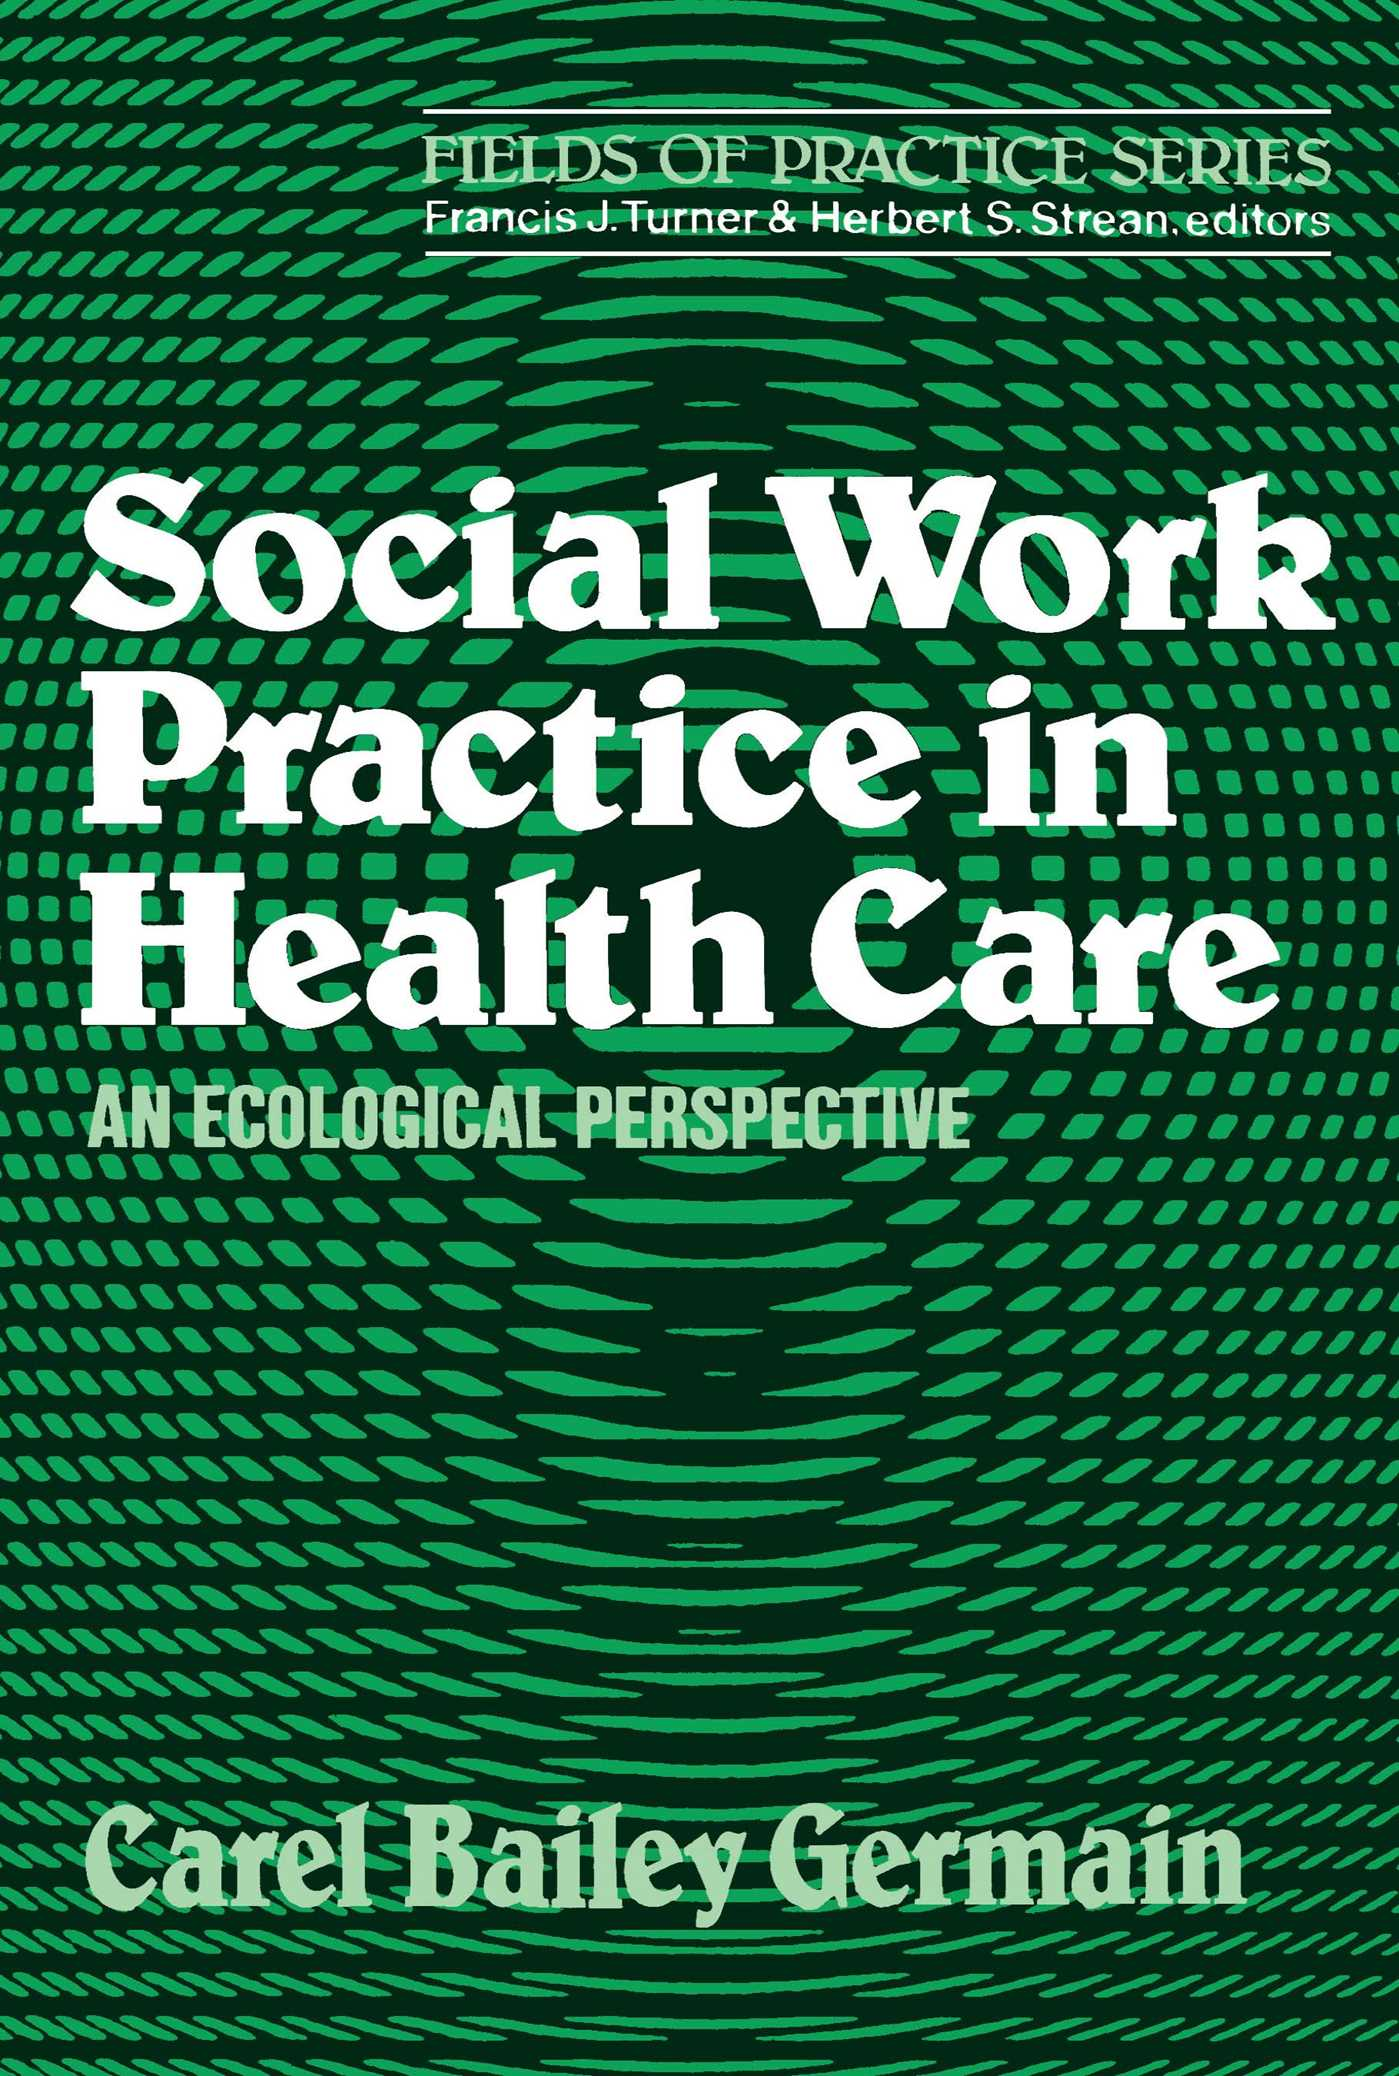 Social-work-practice-in-health-care-9780743236379_hr